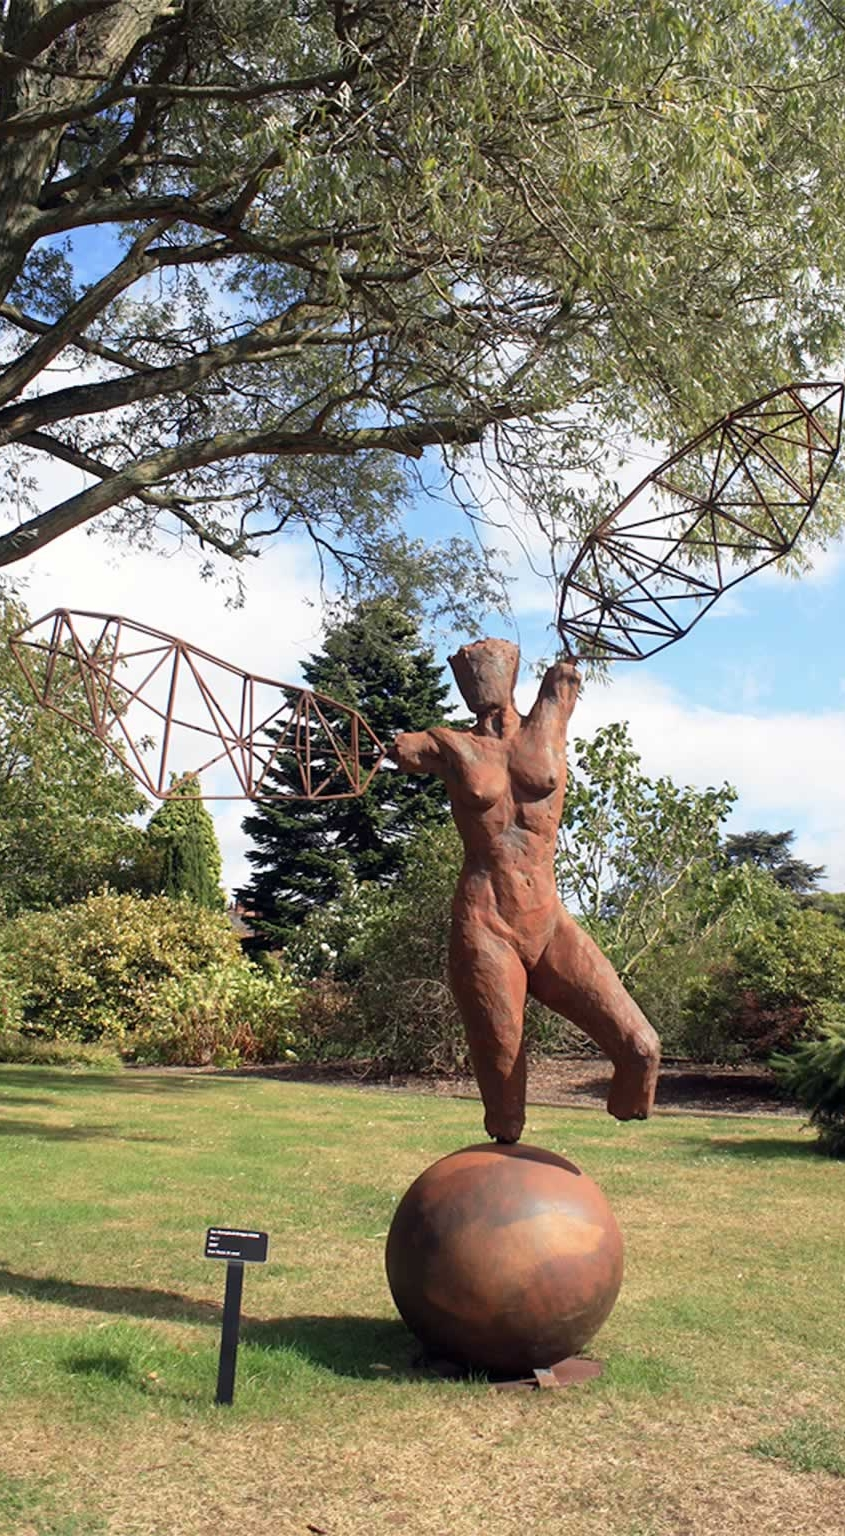 Arc I at Leicester Botanic Gardens (abstract figurative sculpture) by sculptor Ian Campbell-Briggs